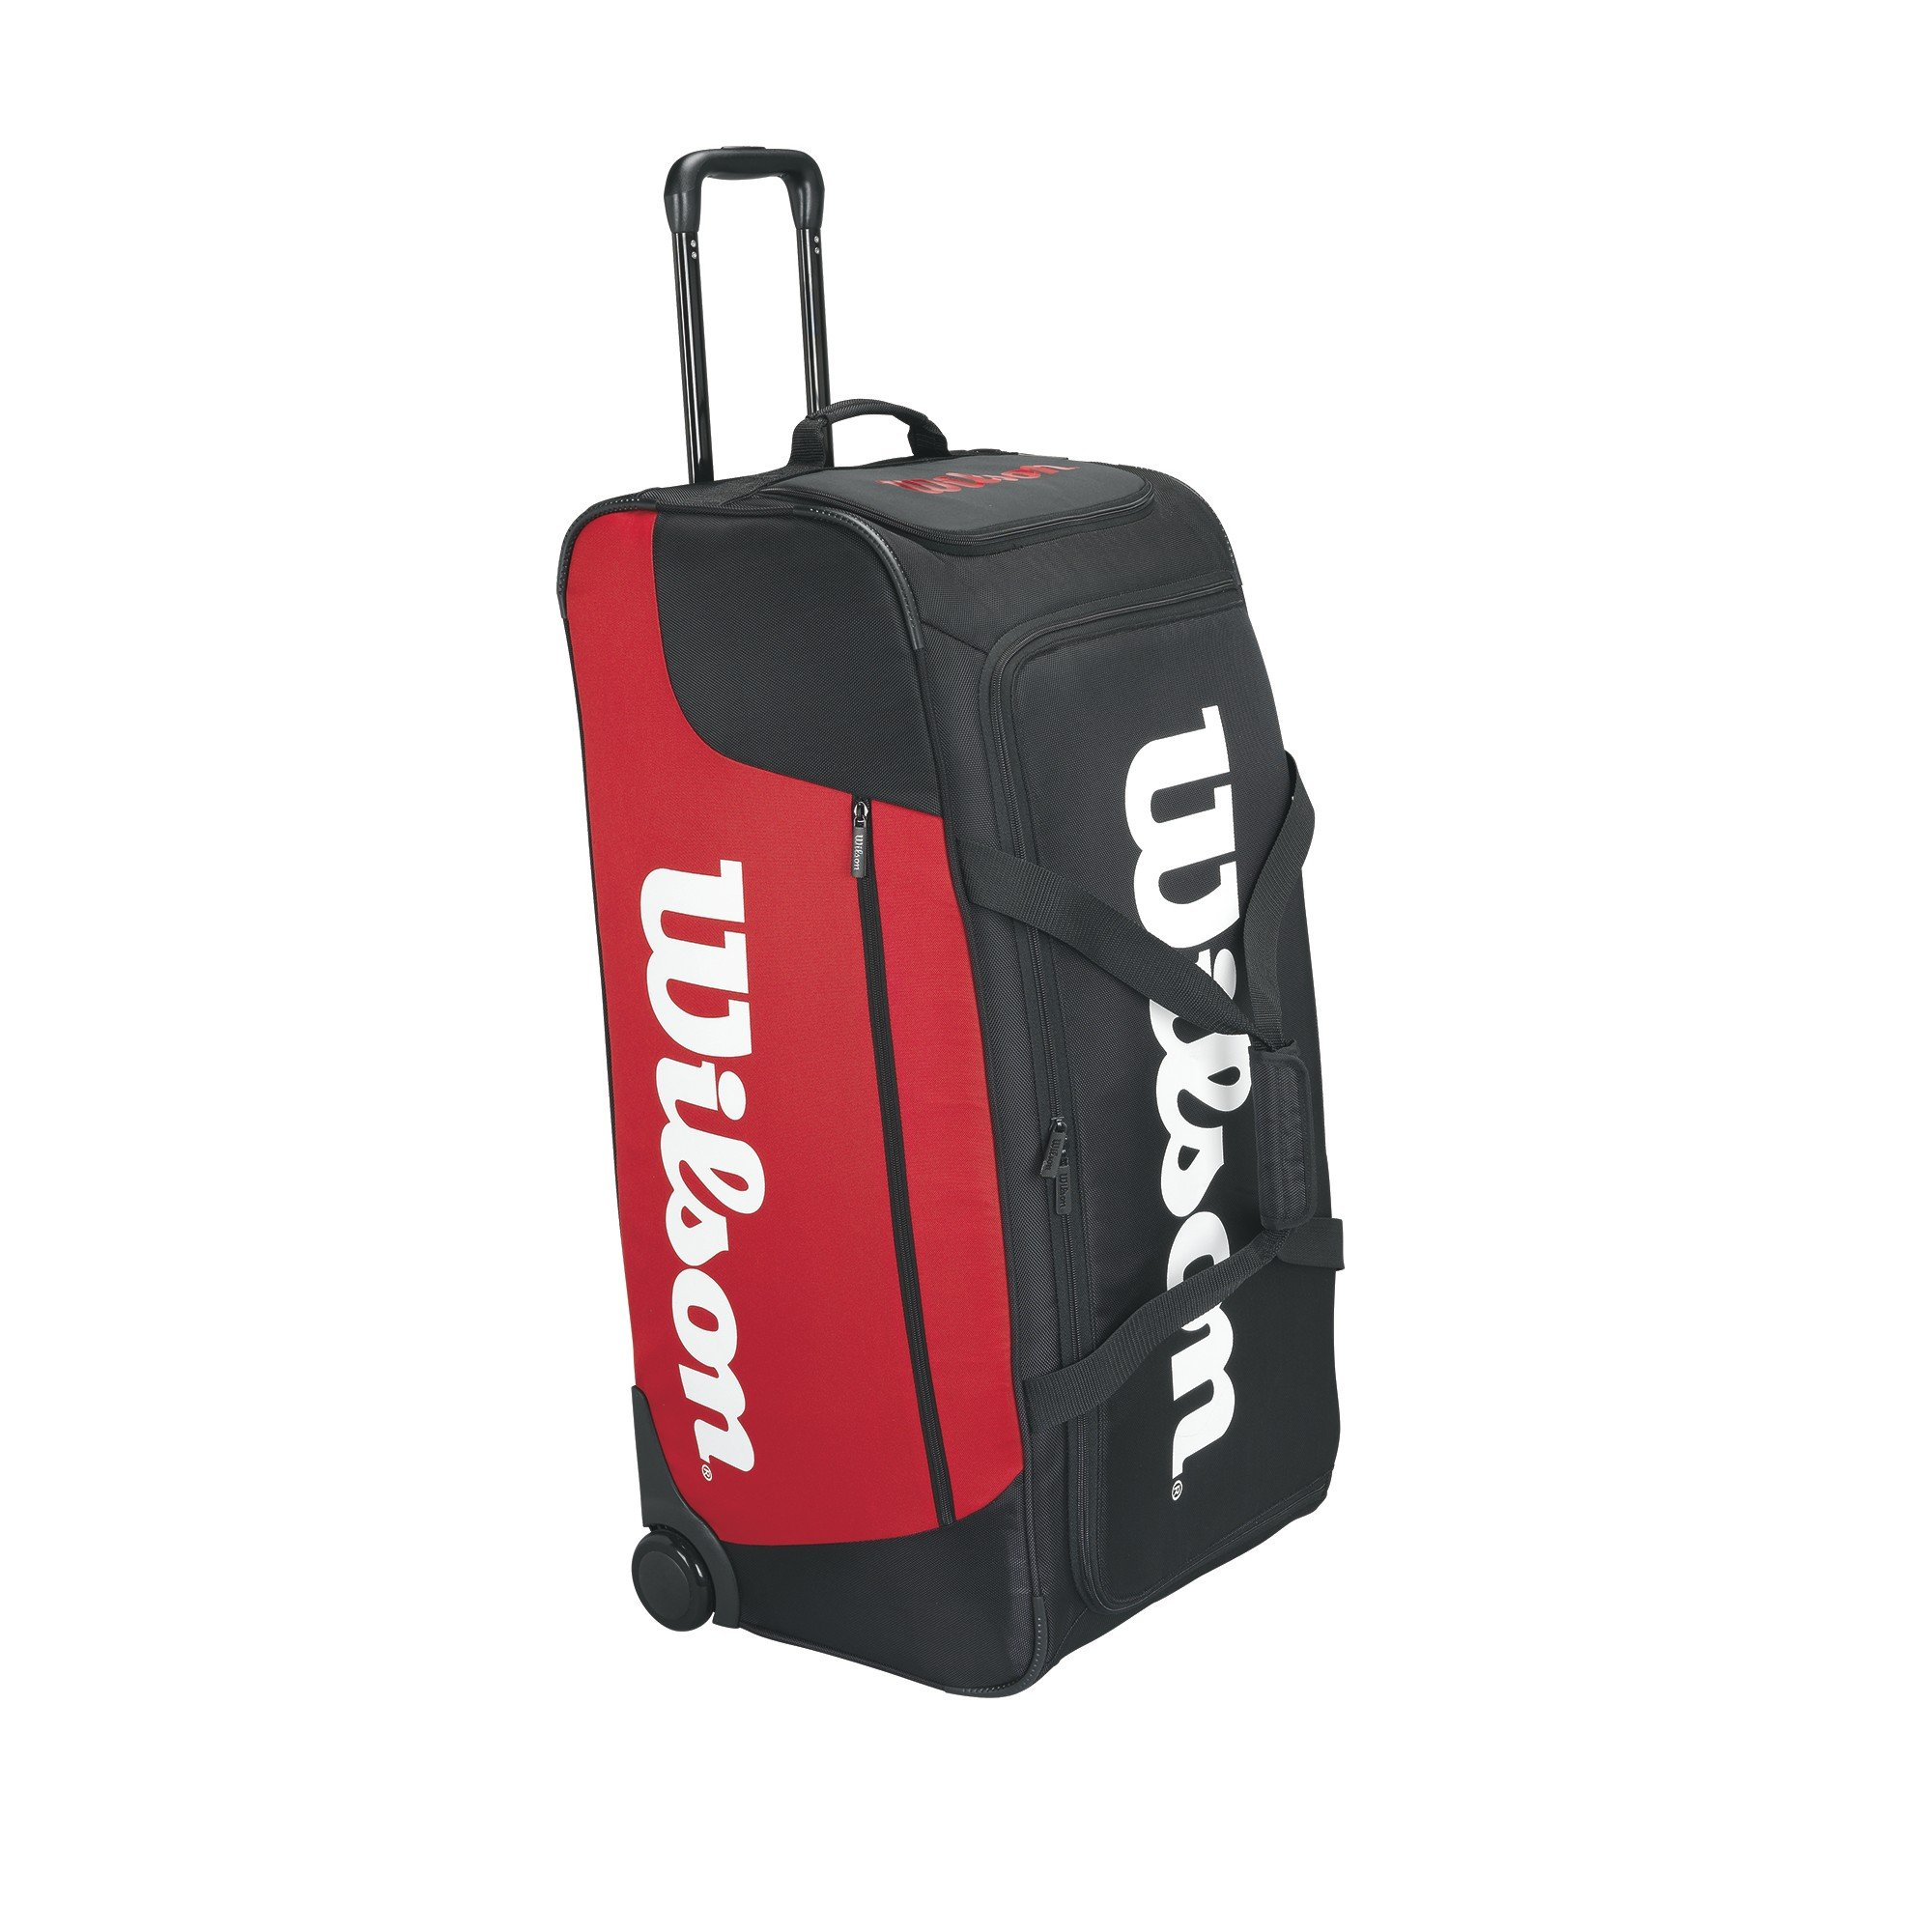 Wilson Tour Traveler Racquet Bag with Wheels, Black/Red